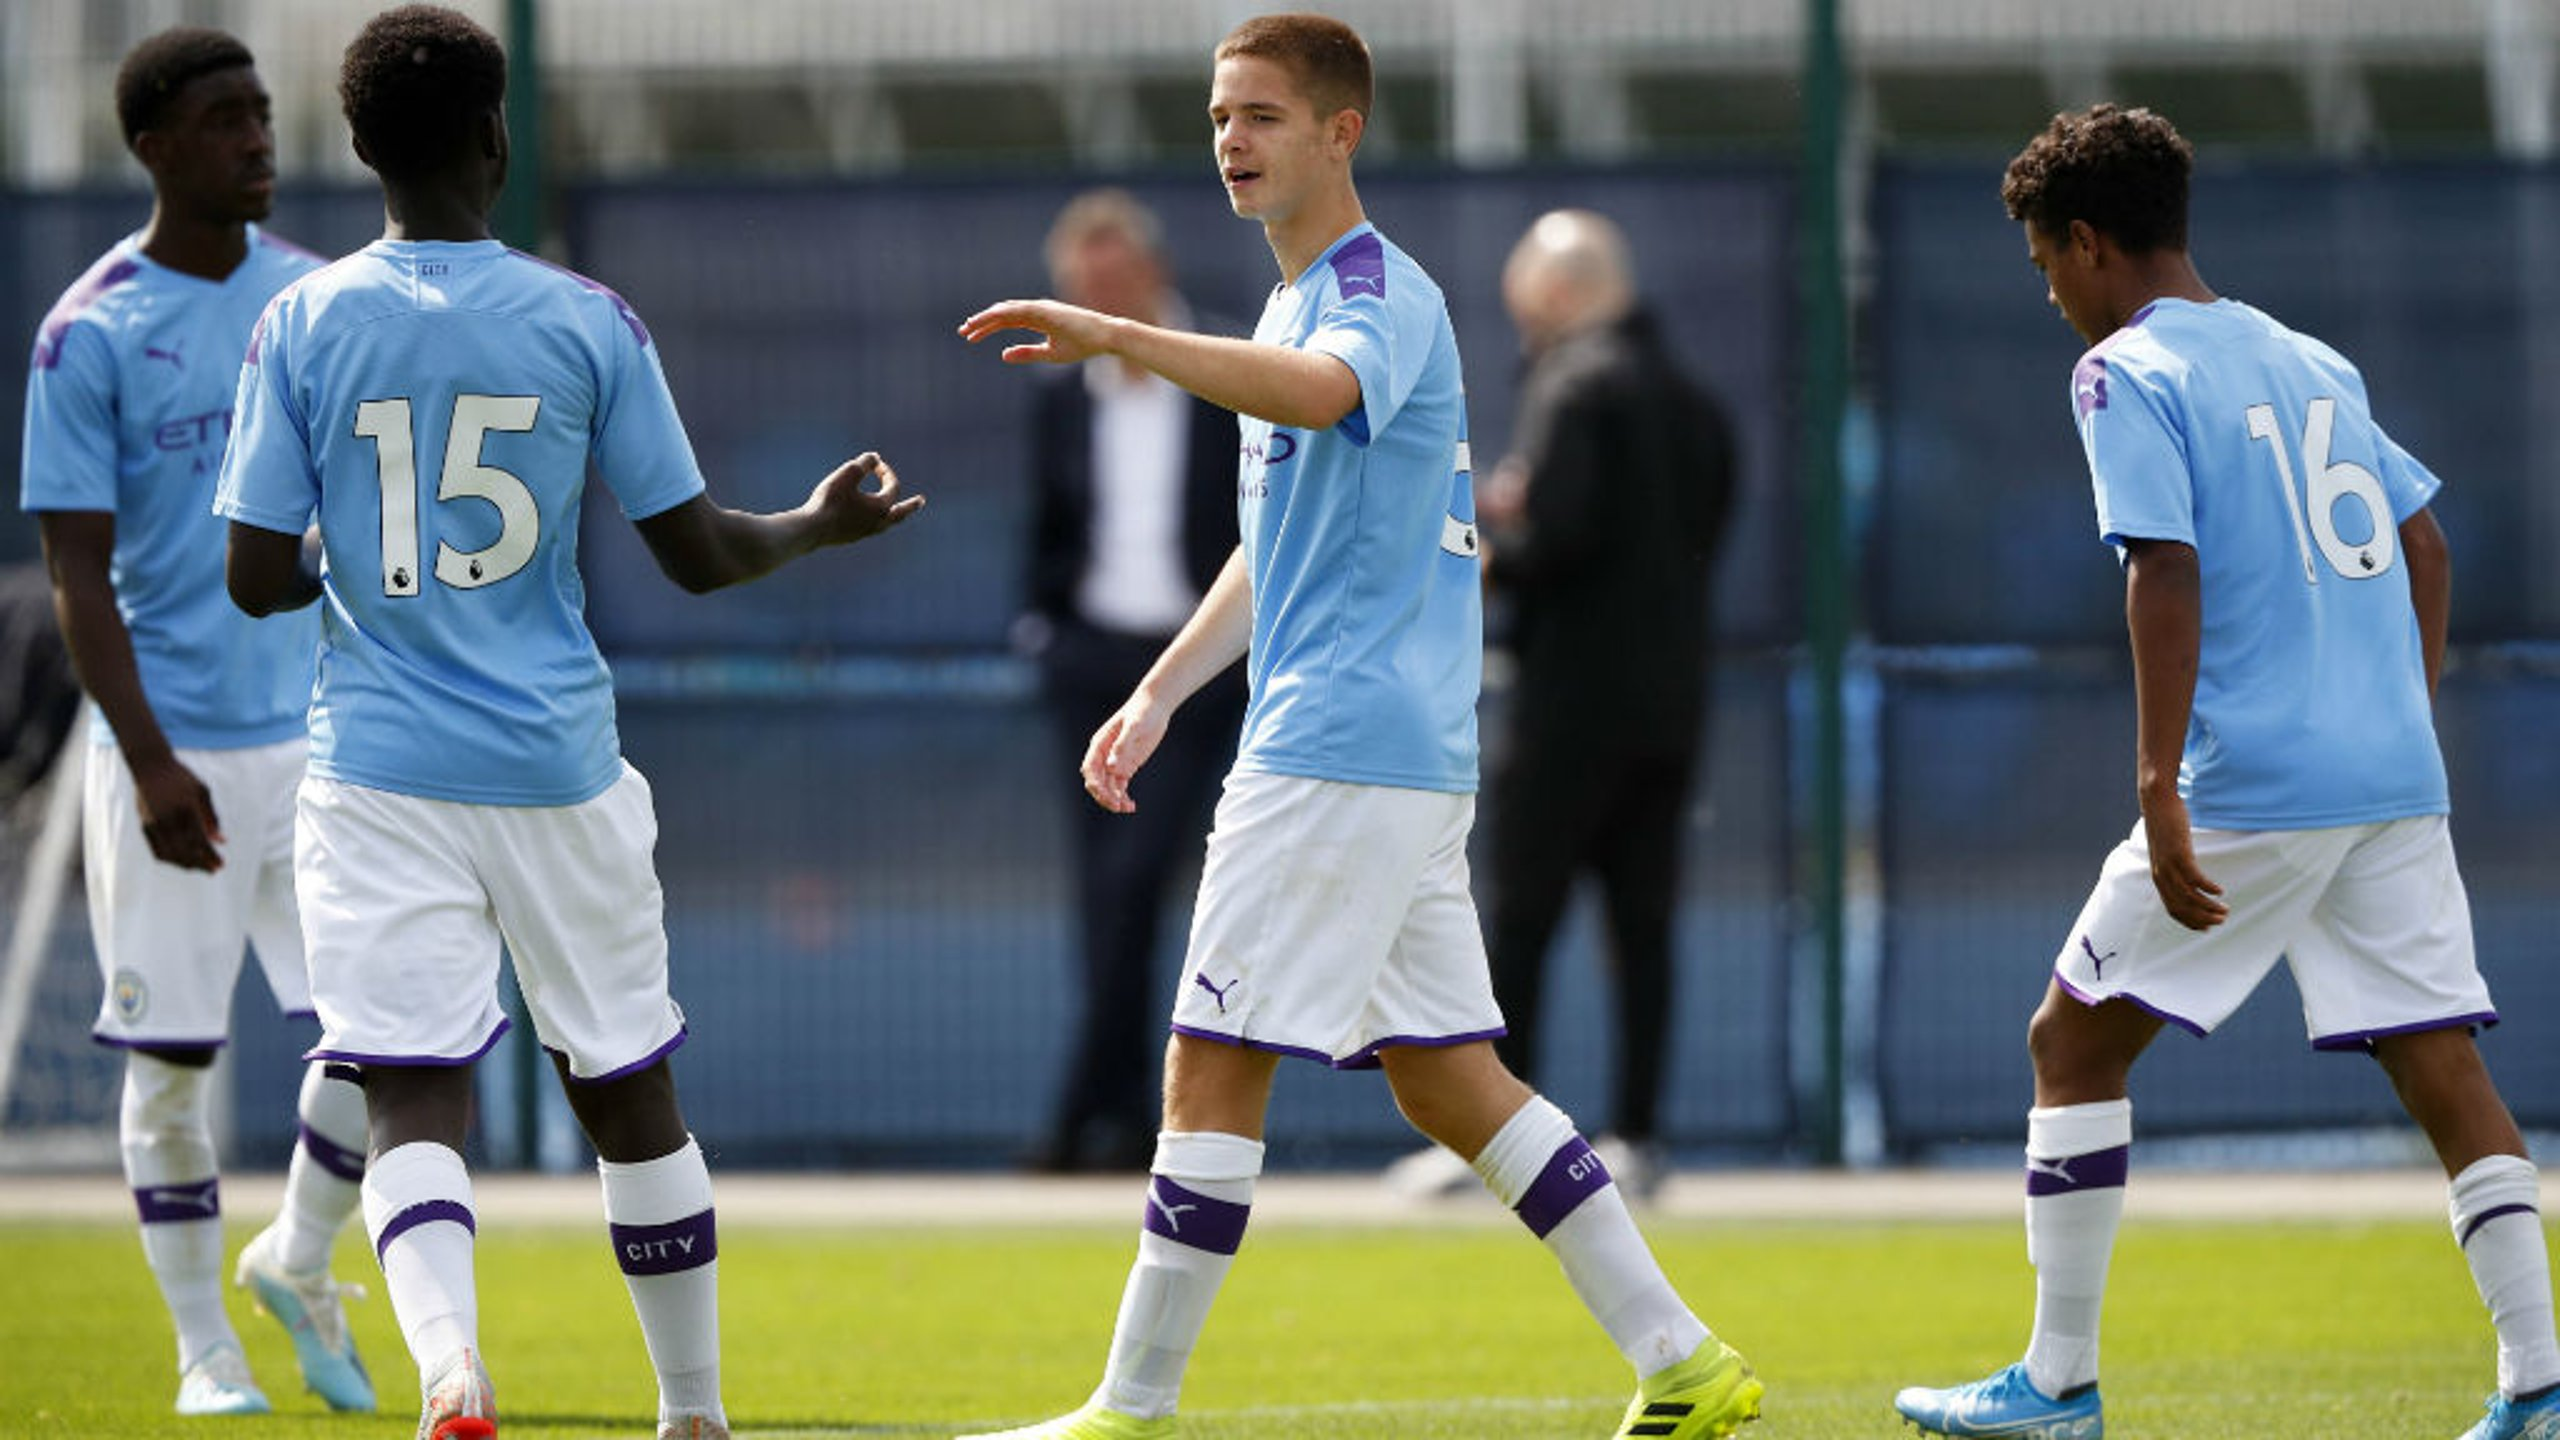 REPORT: City's U18s enjoyed a fine win over Newcastle